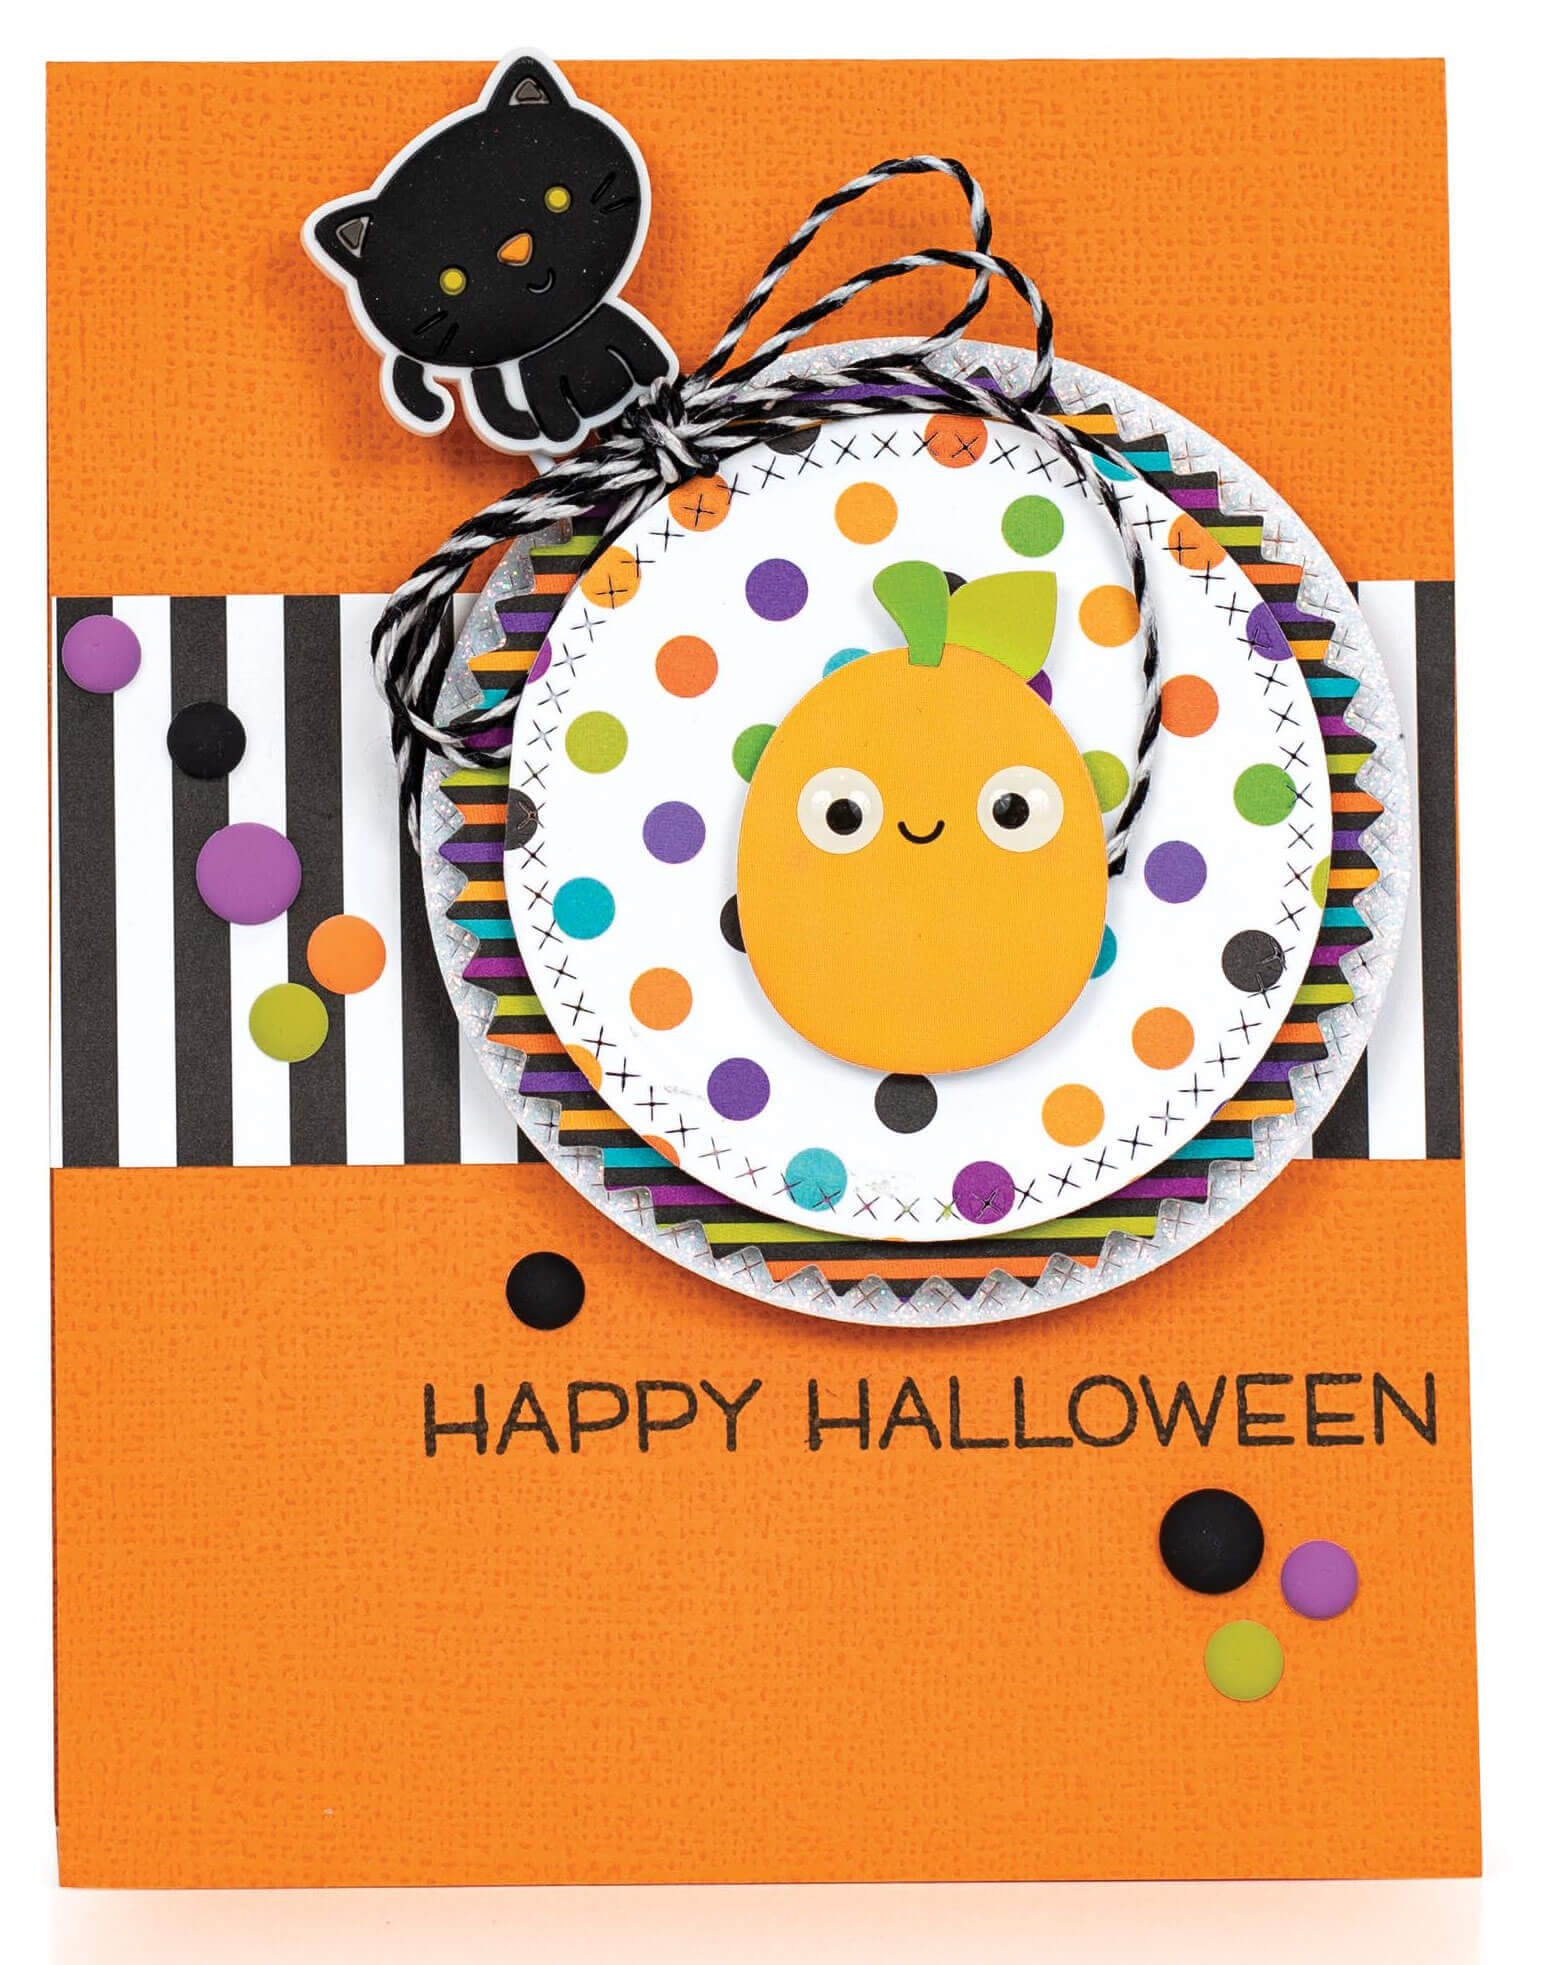 SCT Fall 2019 - Happy Halloween by Latisha Yoast